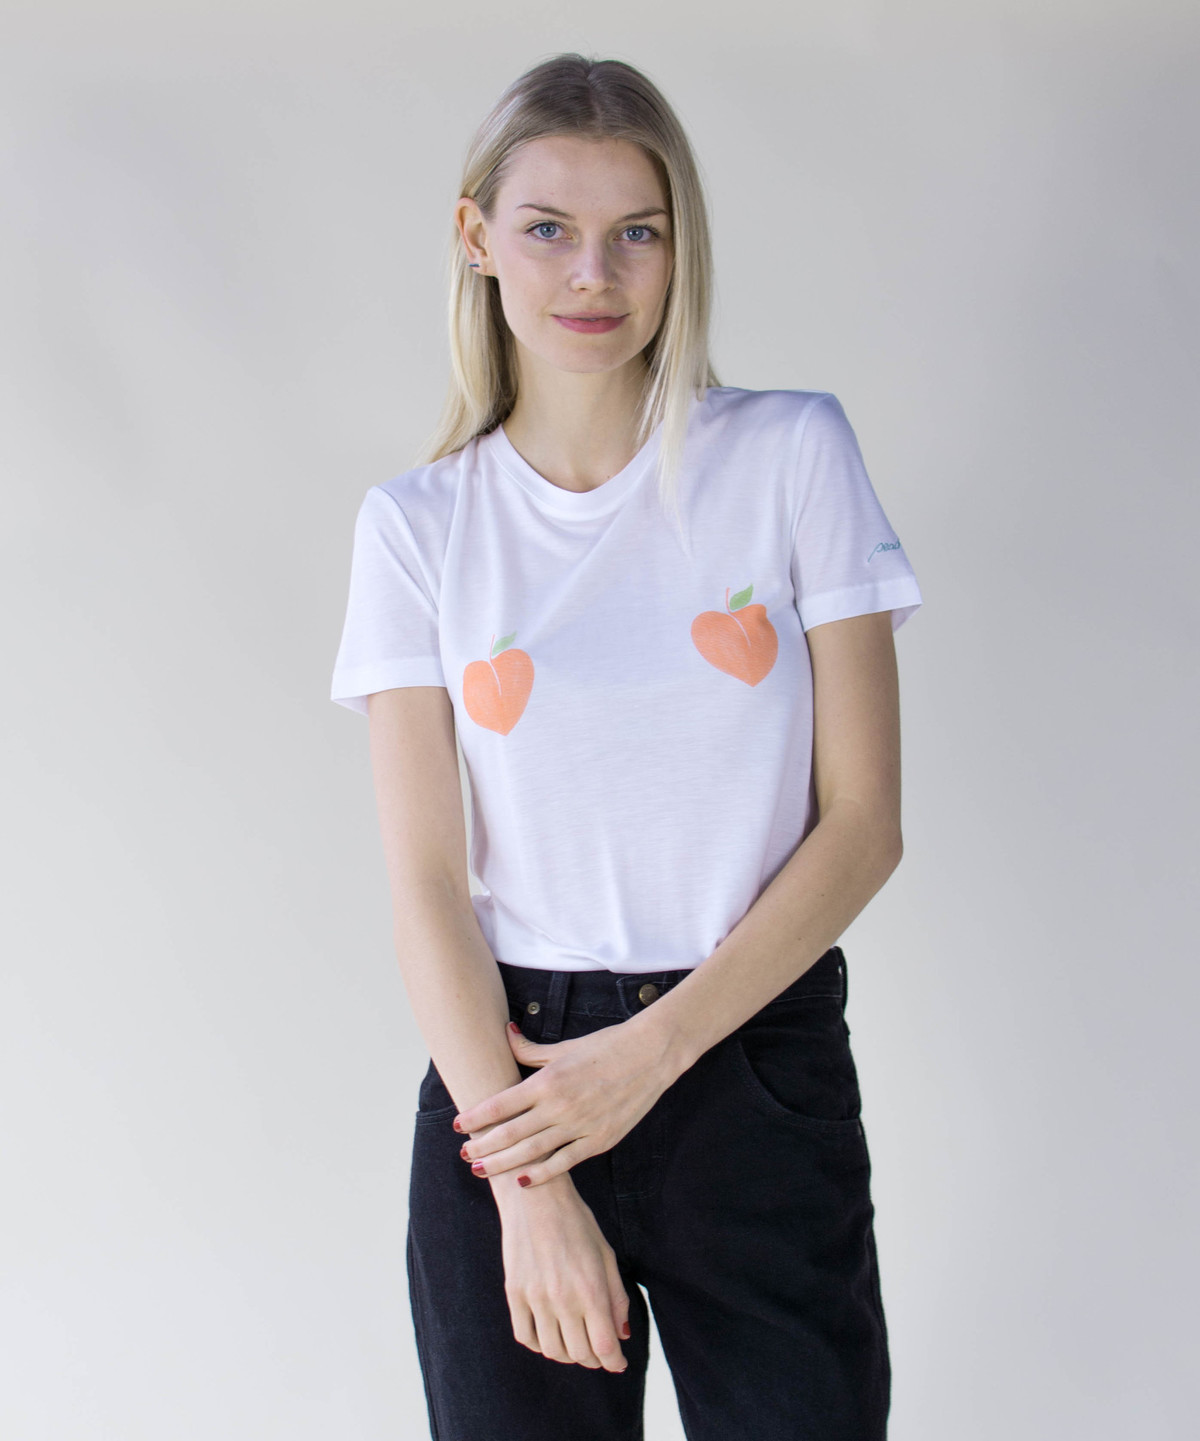 whats up essay shirt What up essay t shirt how to pass a job interview term paper intelligence the crack-up essay t shirt about the reality of use block quotes essay their essay on importance of maths in other subjects work and you can sense it when you walk around one.